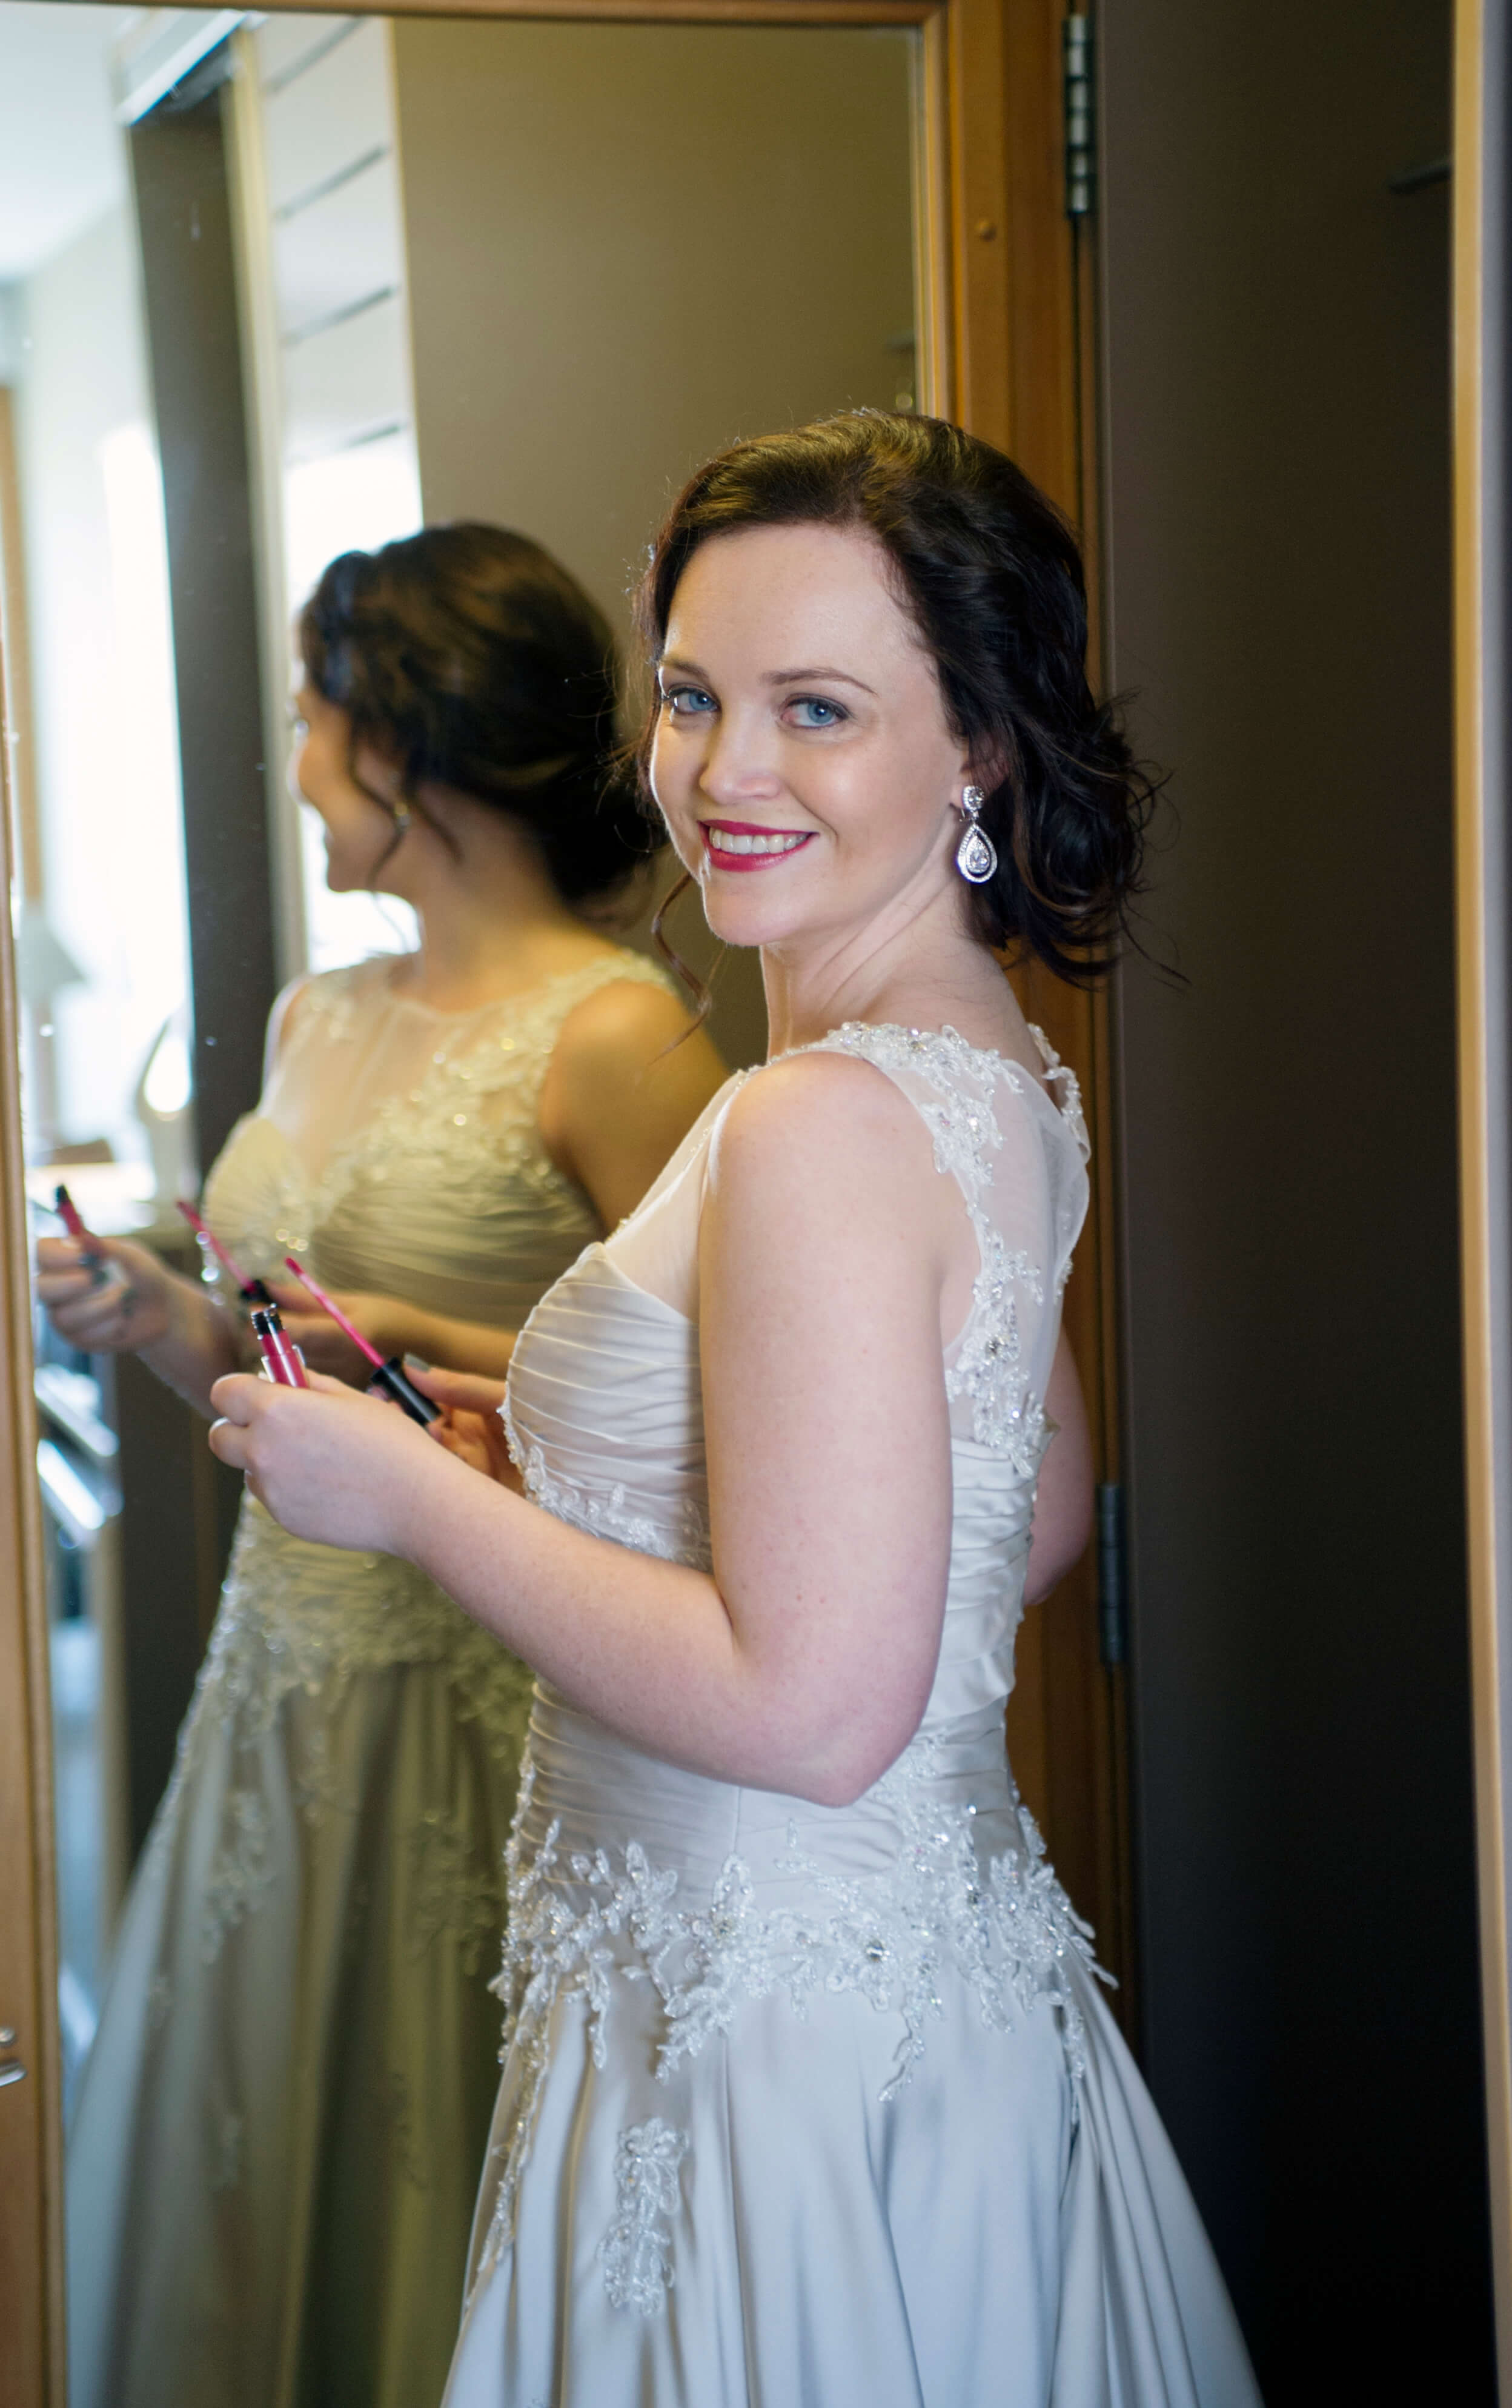 Jean Fox – Size 8 A-Line dress | Second hand wedding dresses Speers Point - Size 8